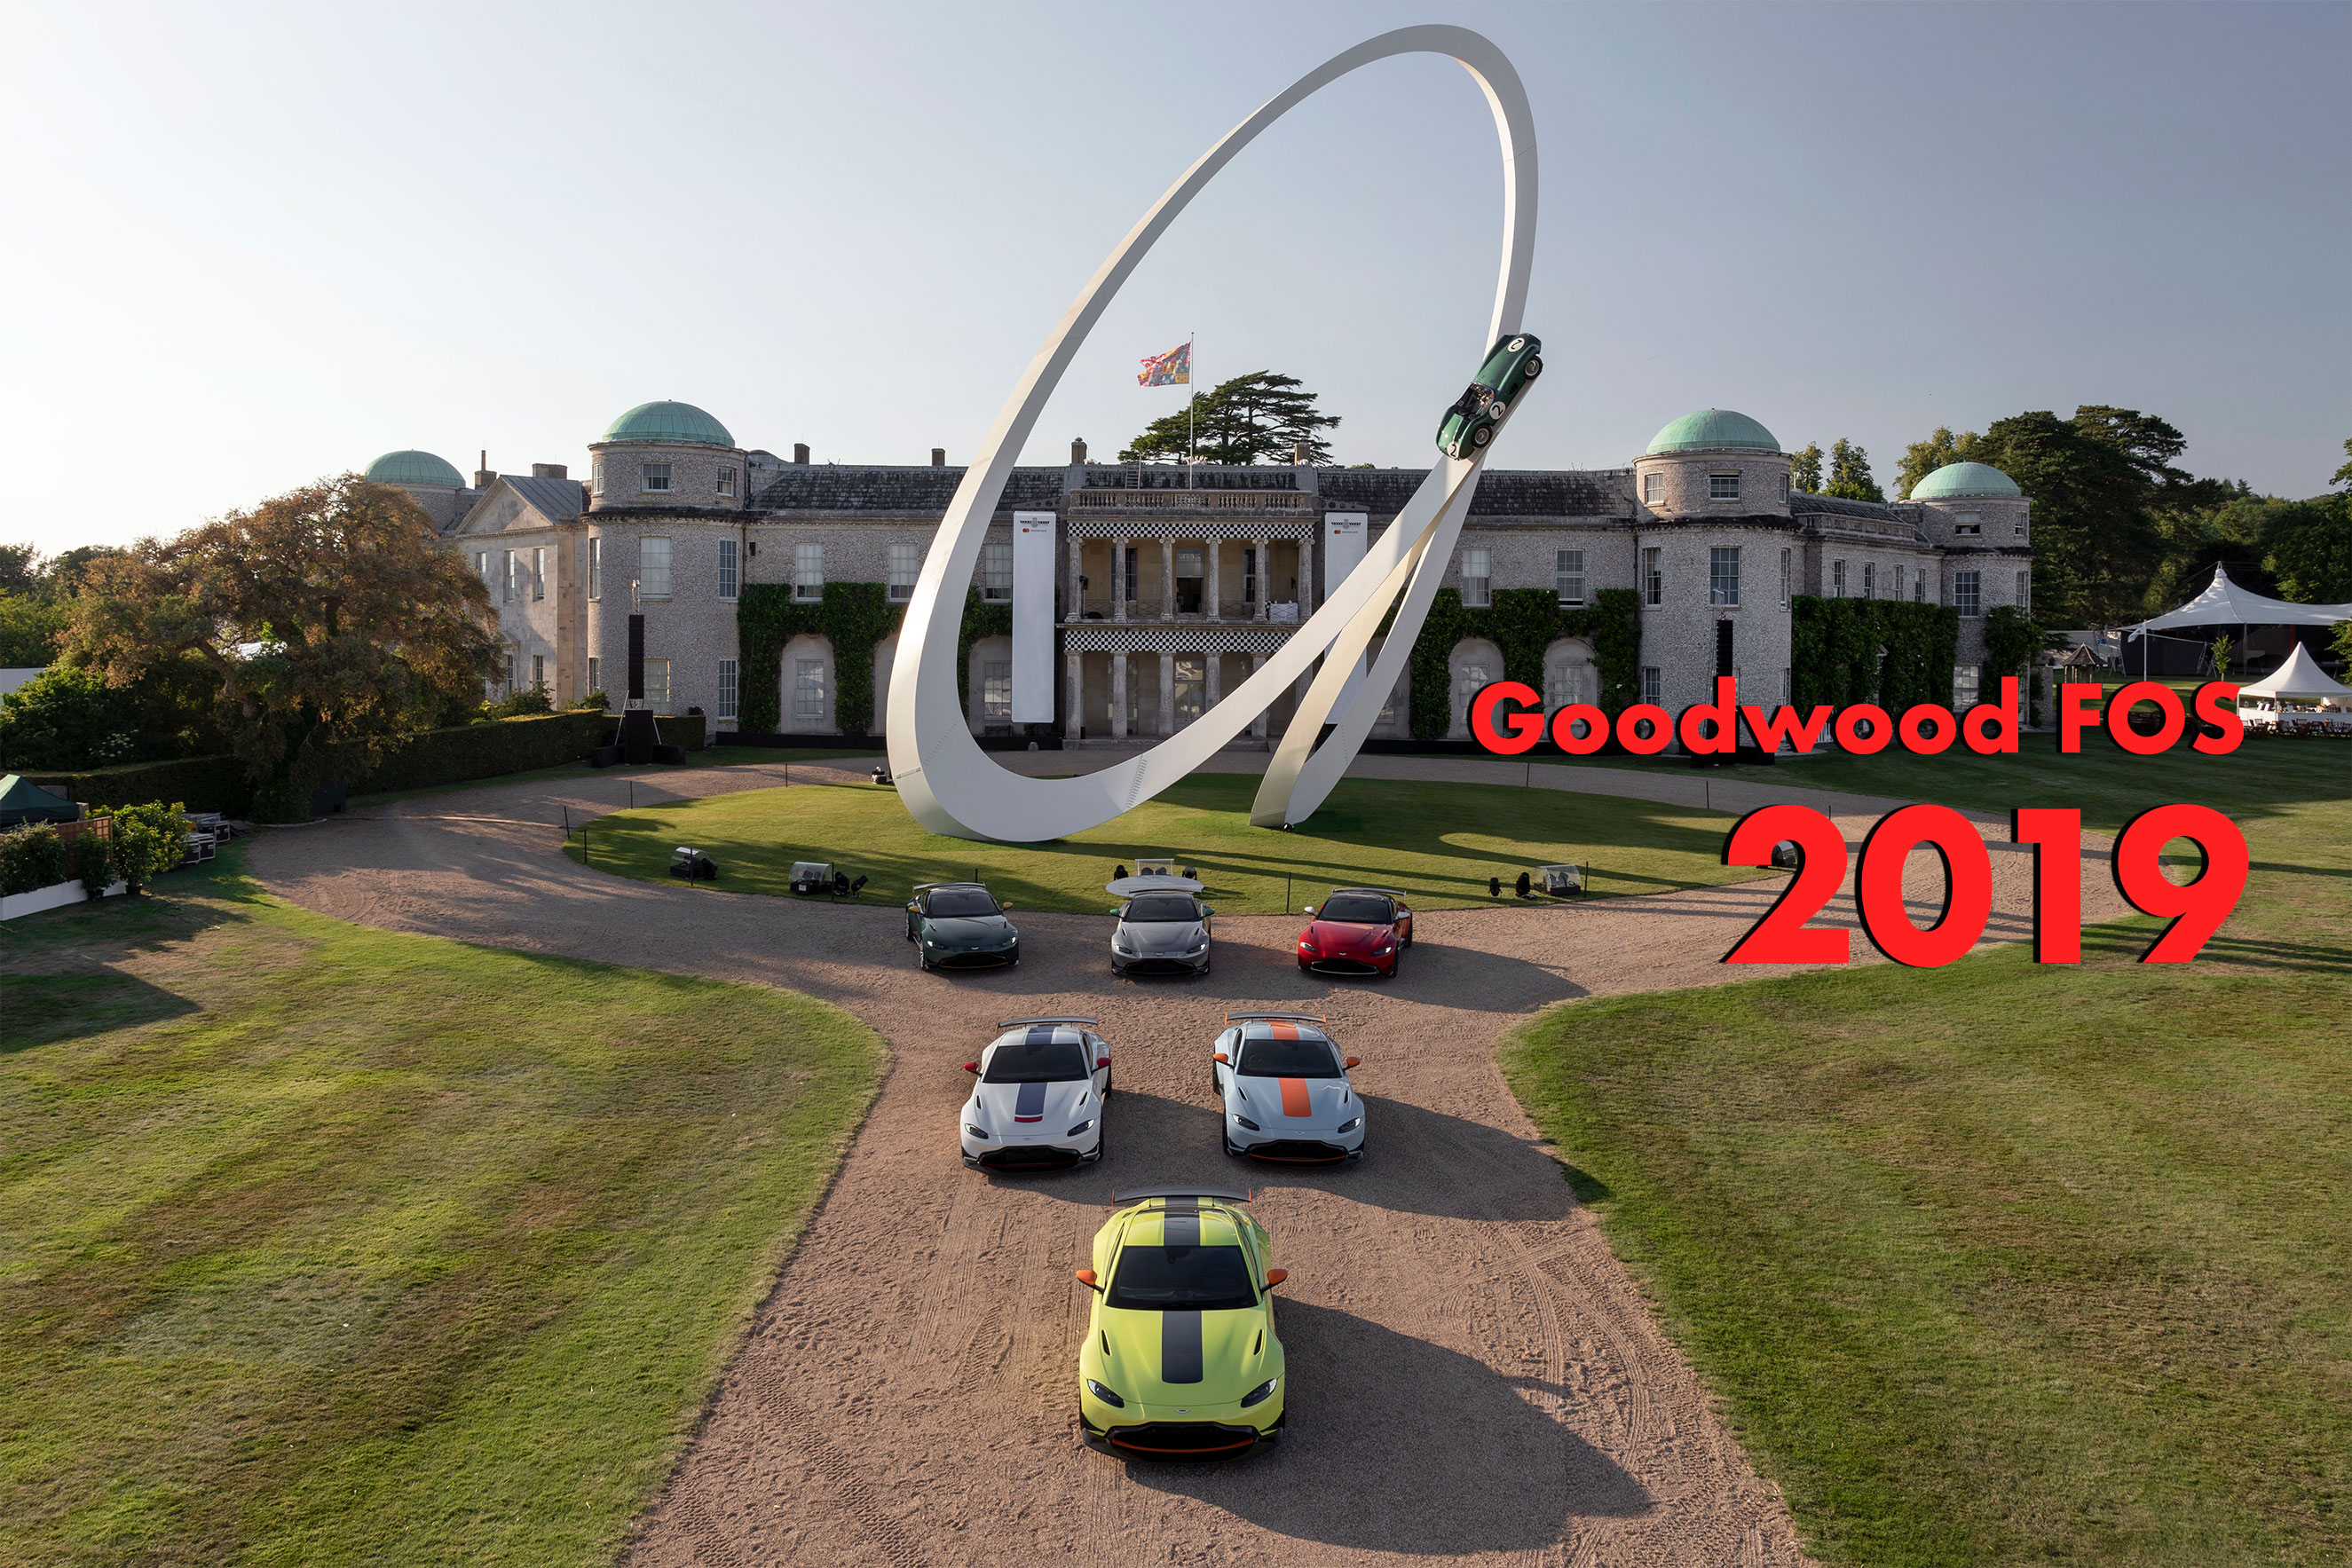 Aston Martin featured at 2019 Goodwood Festival of Speed